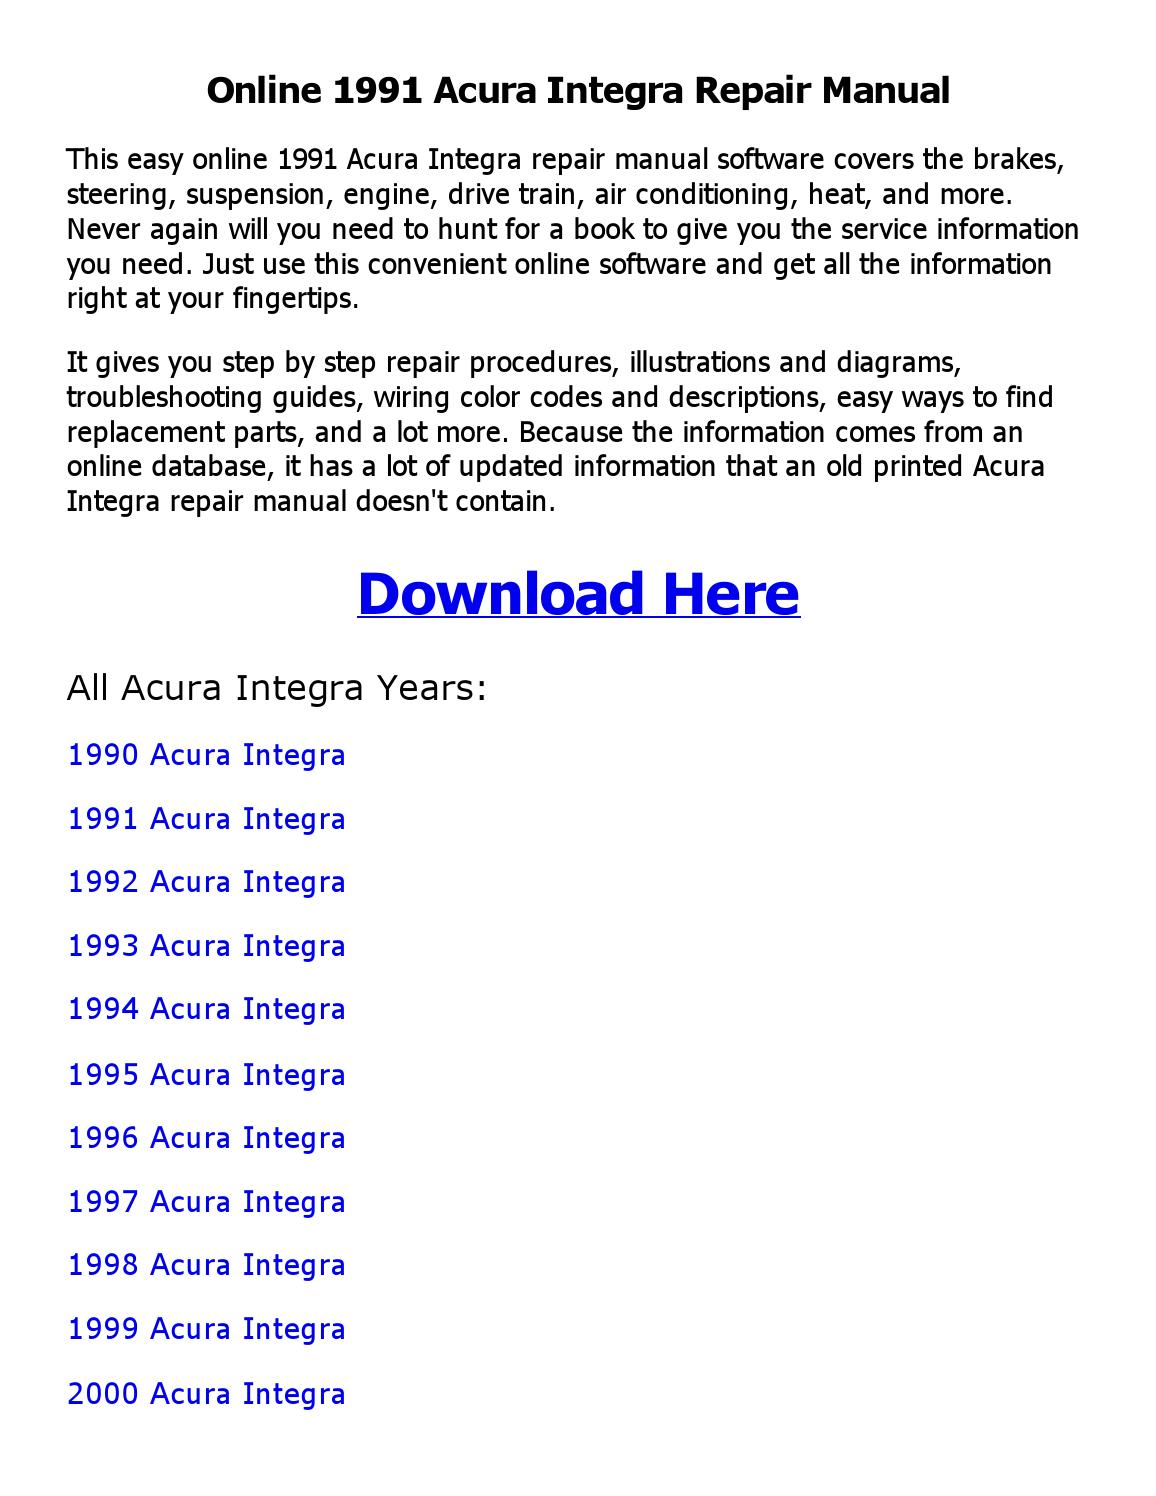 1991 acura integra repair manual online by sayma - issuu on 90 acura integra wiring diagram, 91 acura integra headlights, 1996 acura integra wiring diagram, ep3 honda civic wiring diagram, 91 acura integra fuel system, 1991 5.8l ignition wiring diagram, 91 acura integra door, 91 acura integra antenna, 1991 acura integra wiring diagram, 91 acura integra parts, 94 acura integra wiring diagram, for a 90 integra ignition diagram, 2000 honda civic wiring diagram, 89 acura integra distributor diagram, 1993 acura integra wiring diagram, acura integra ignition switch wiring diagram, 91 acura integra rear suspension, 1992 acura integra wiring diagram, 91 acura integra radio harness,